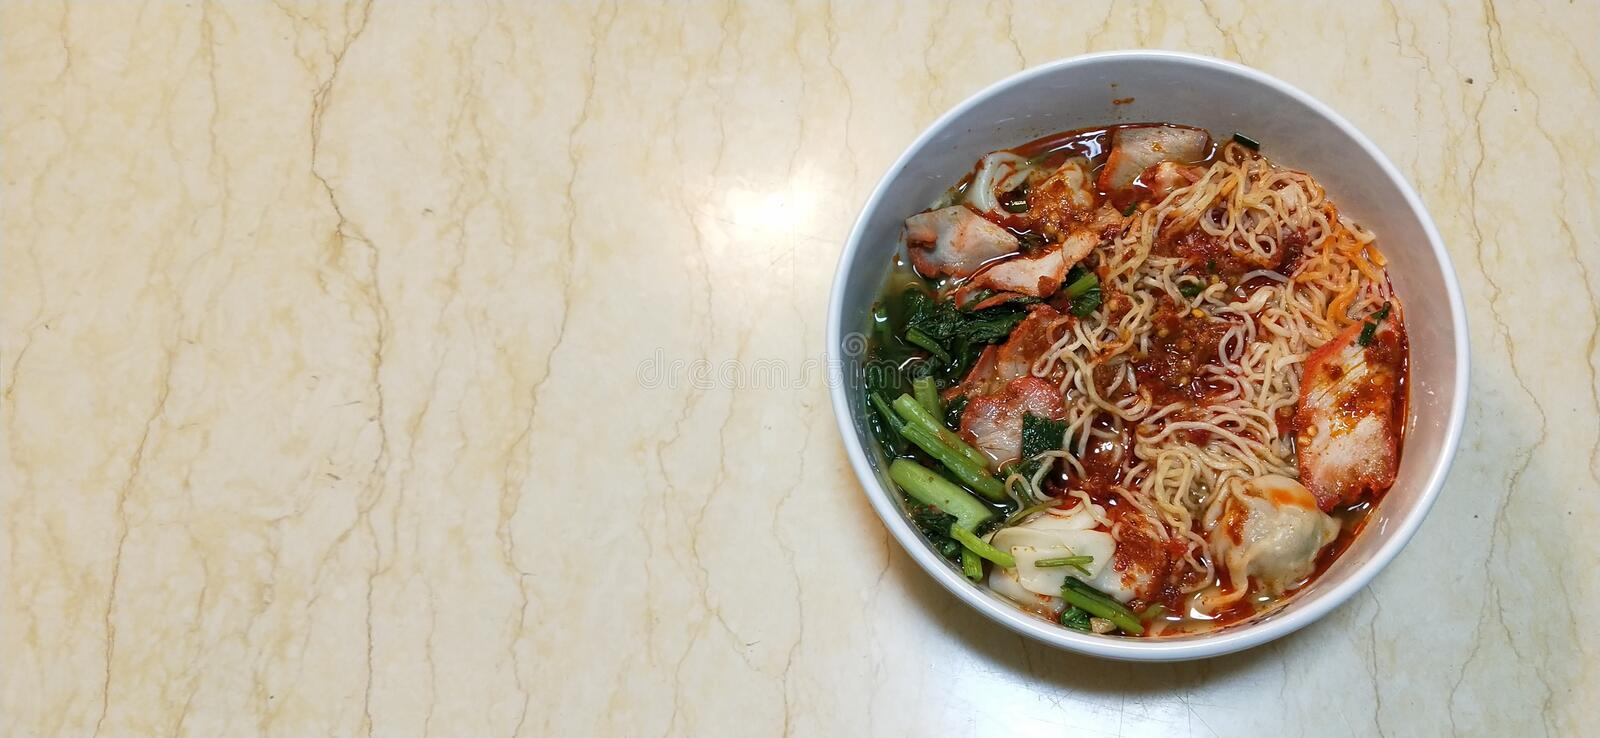 Spicy noodle with dumpling and roasted red pork. On marble table royalty free stock photos